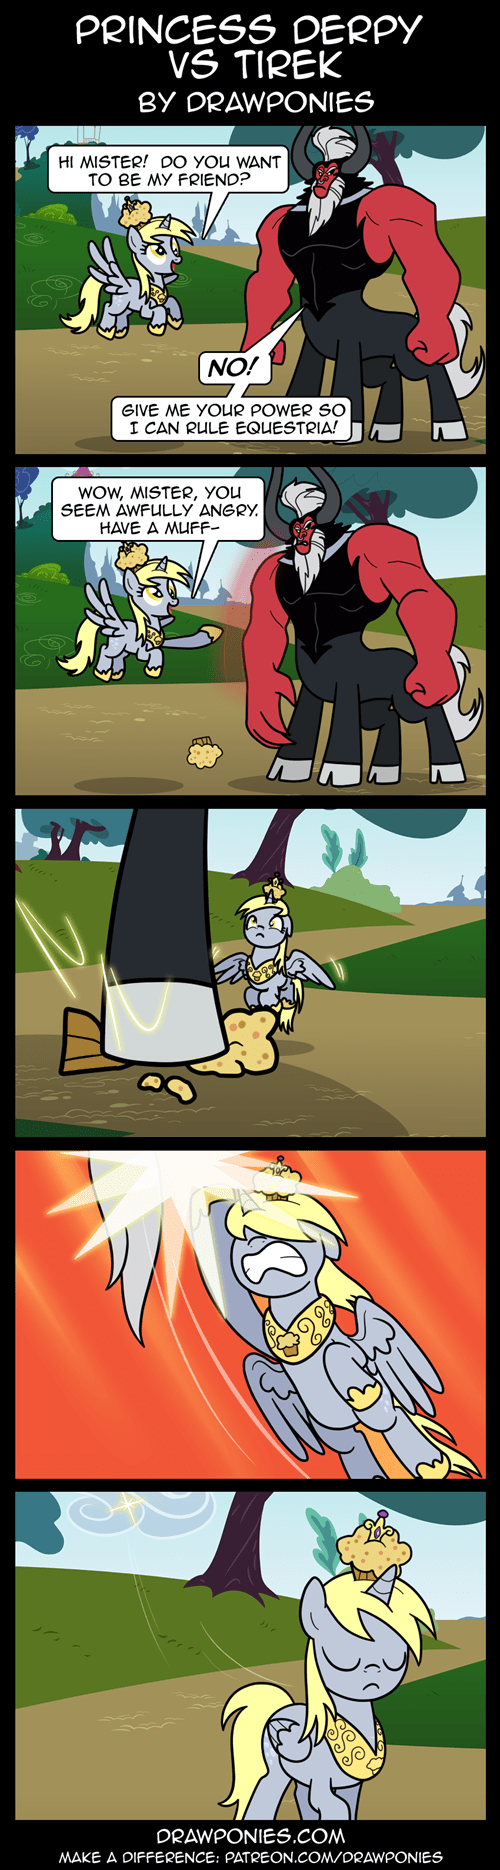 comics,derpy hooves,tirek